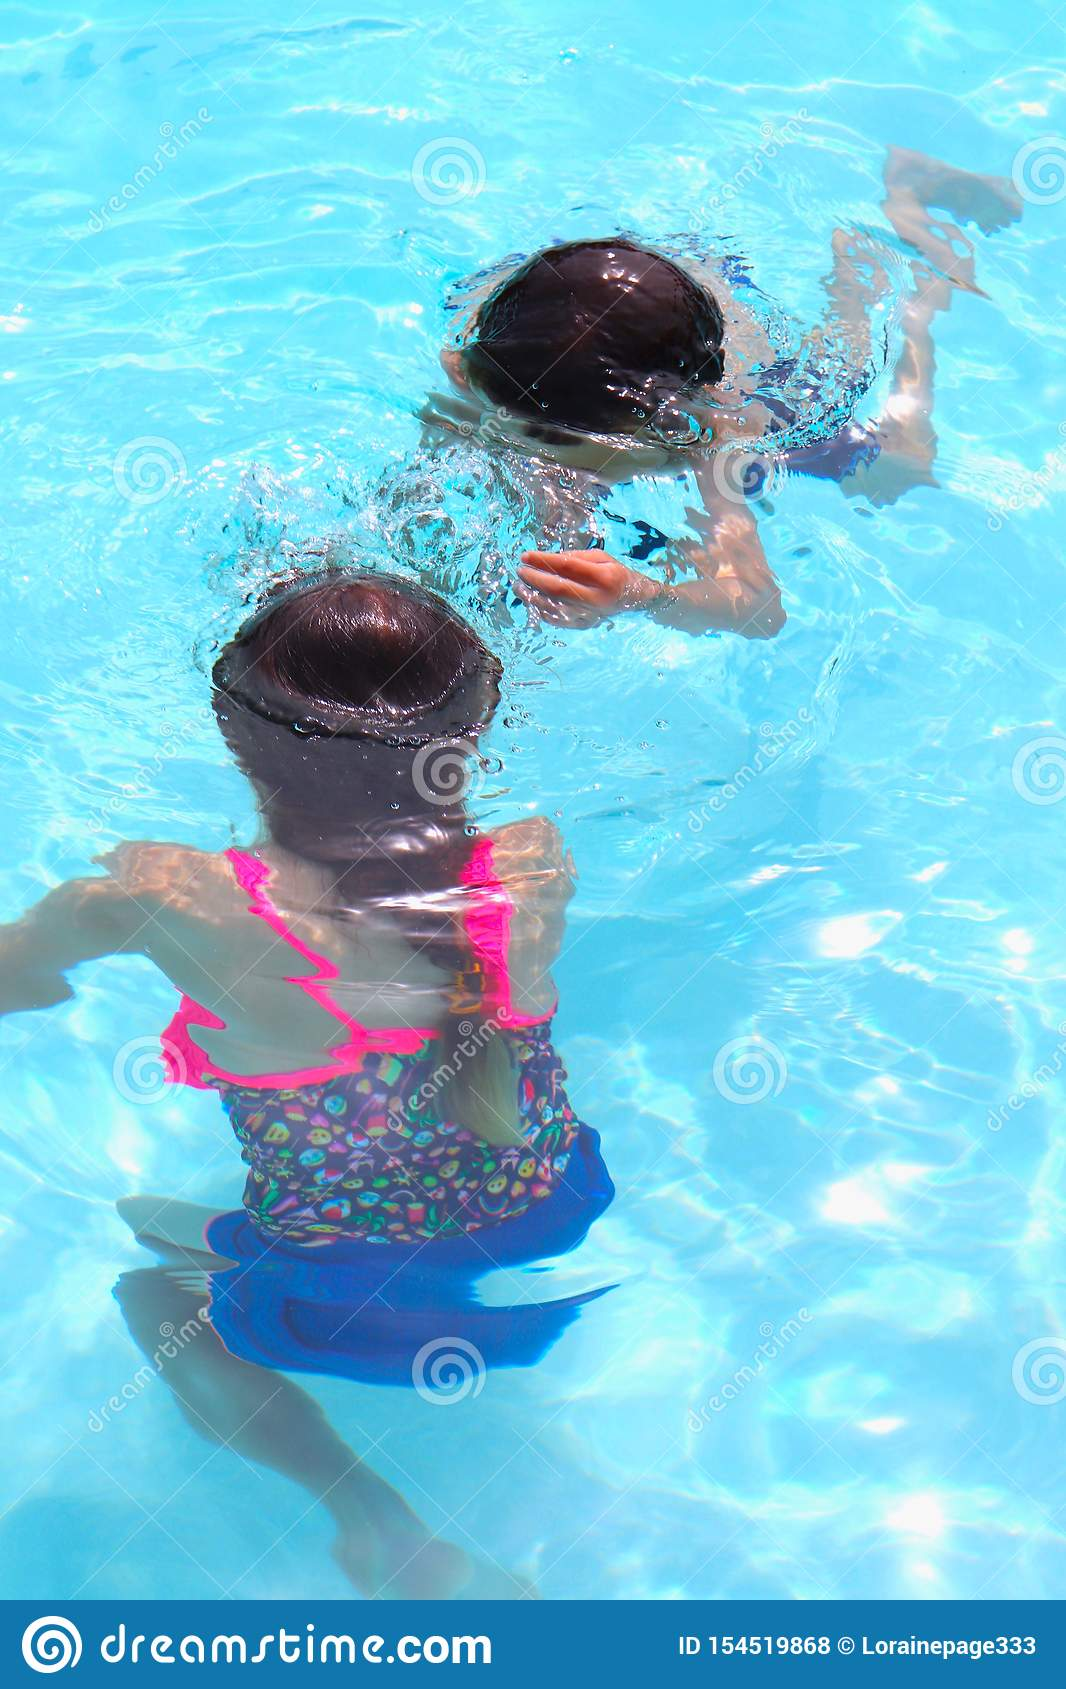 Pool Fun With Kids Playing Underwater During Summer Vacation